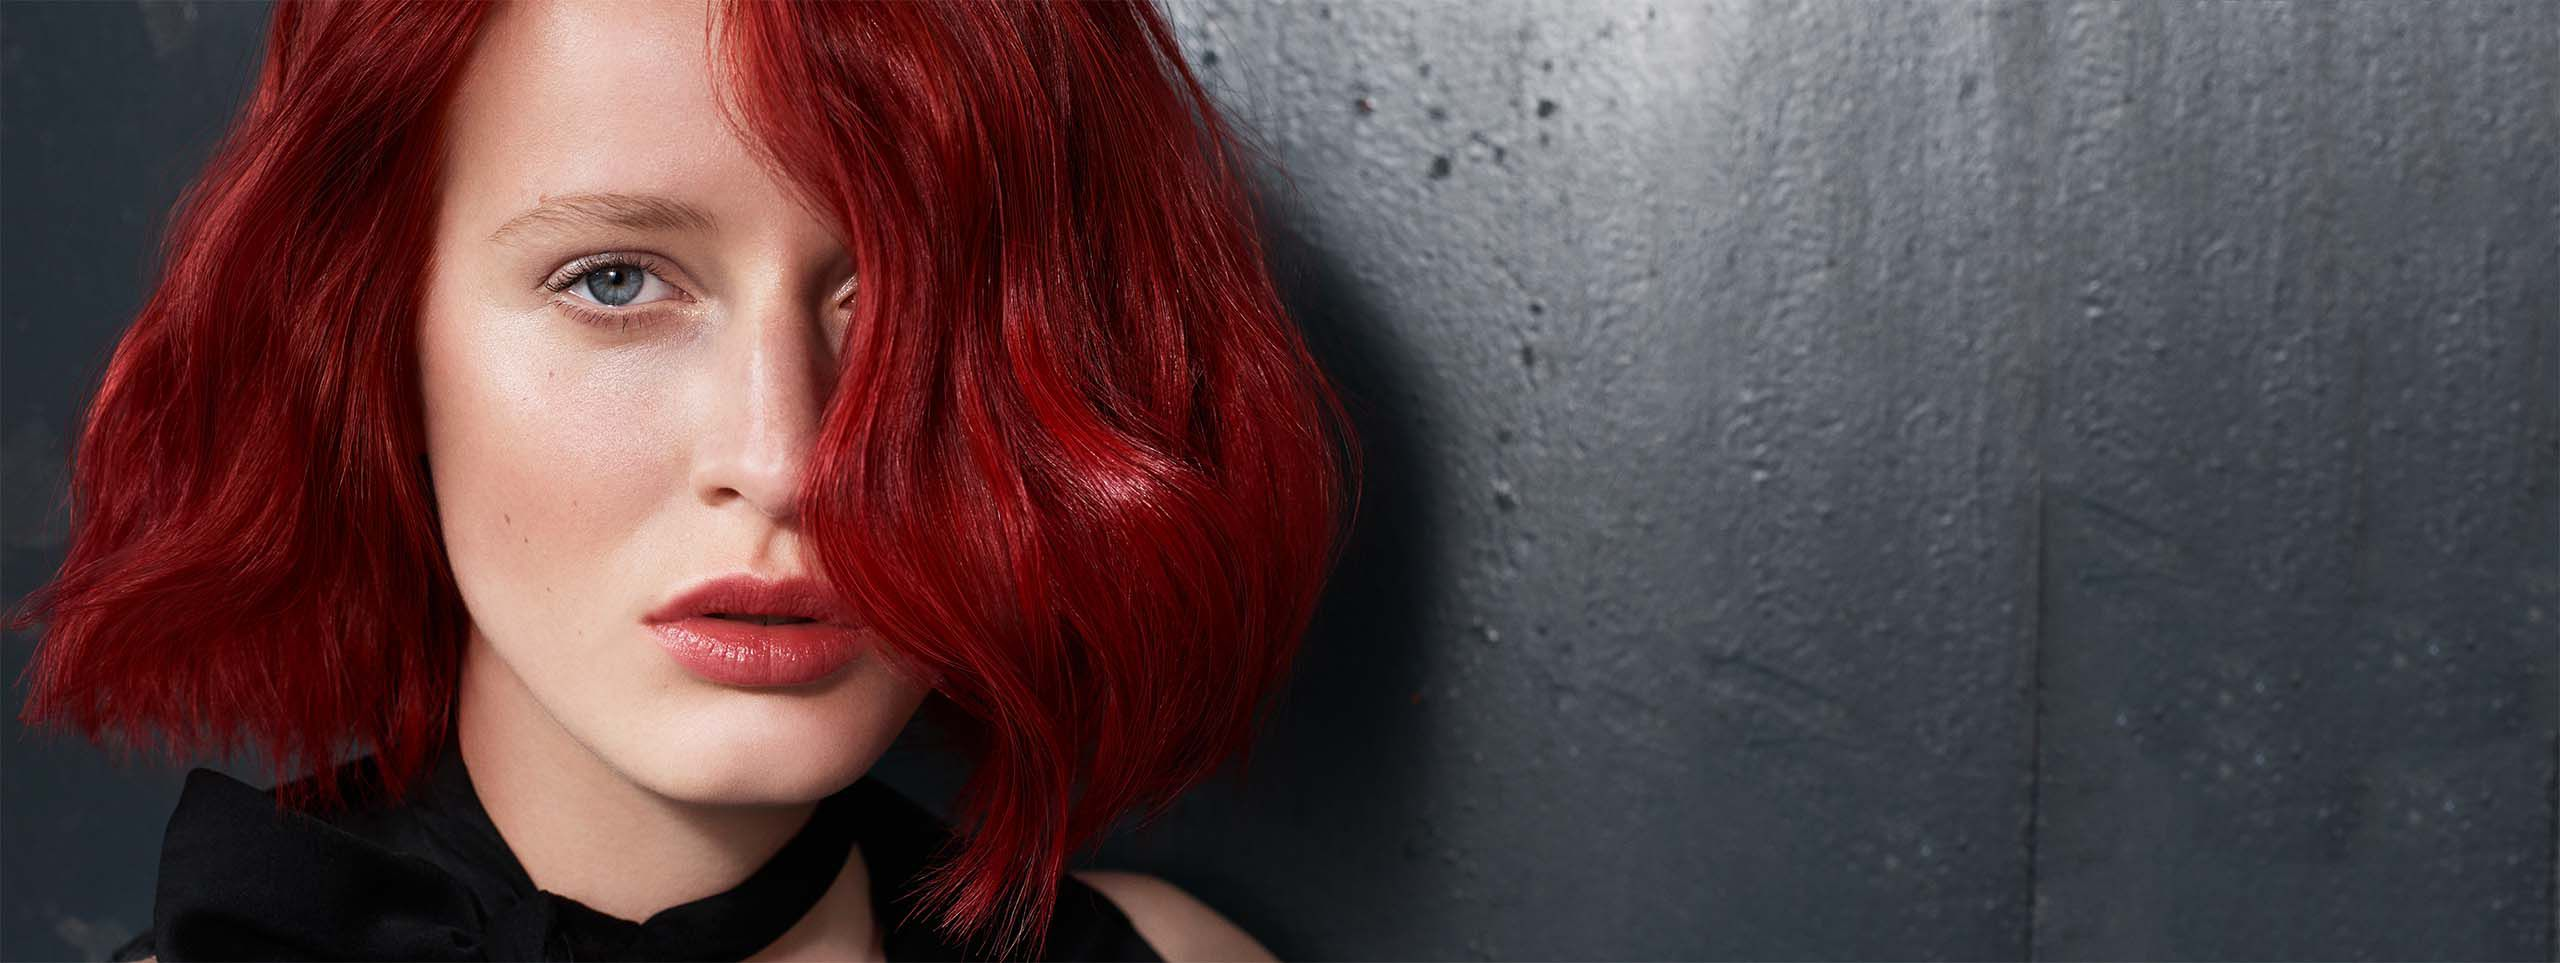 Woman with beautiful bobbed red hair.